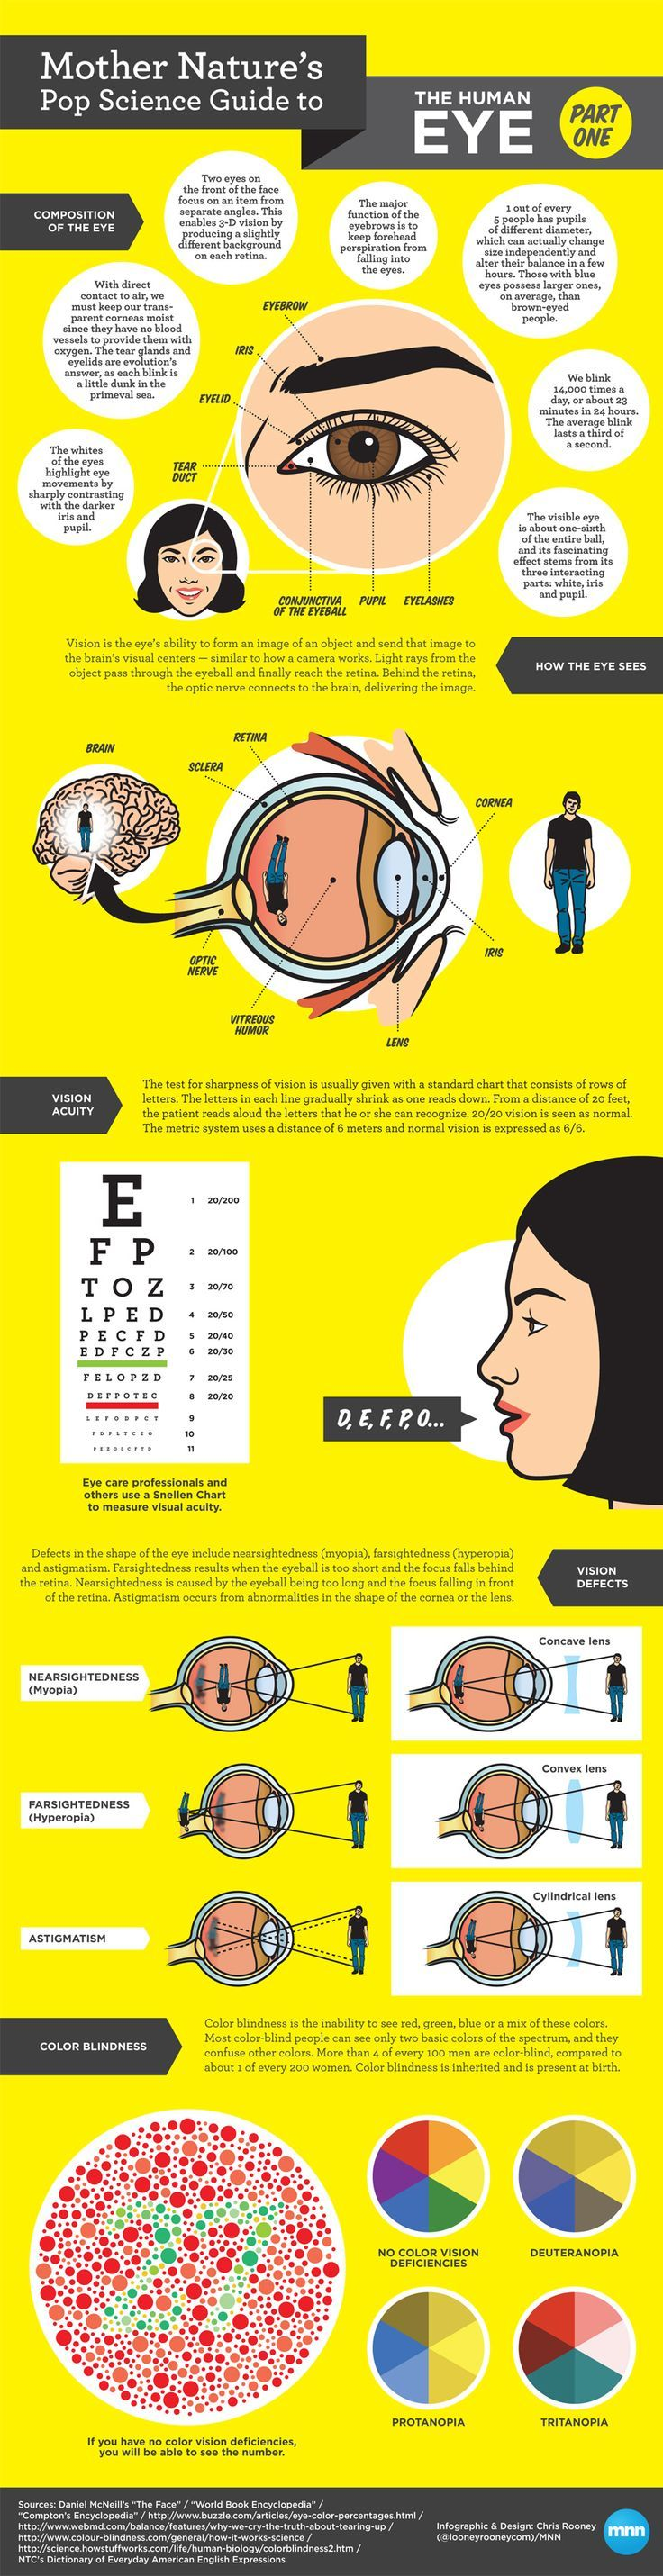 Mother Natures Pop Science Guide To The Human Eye Part 1 Infographic